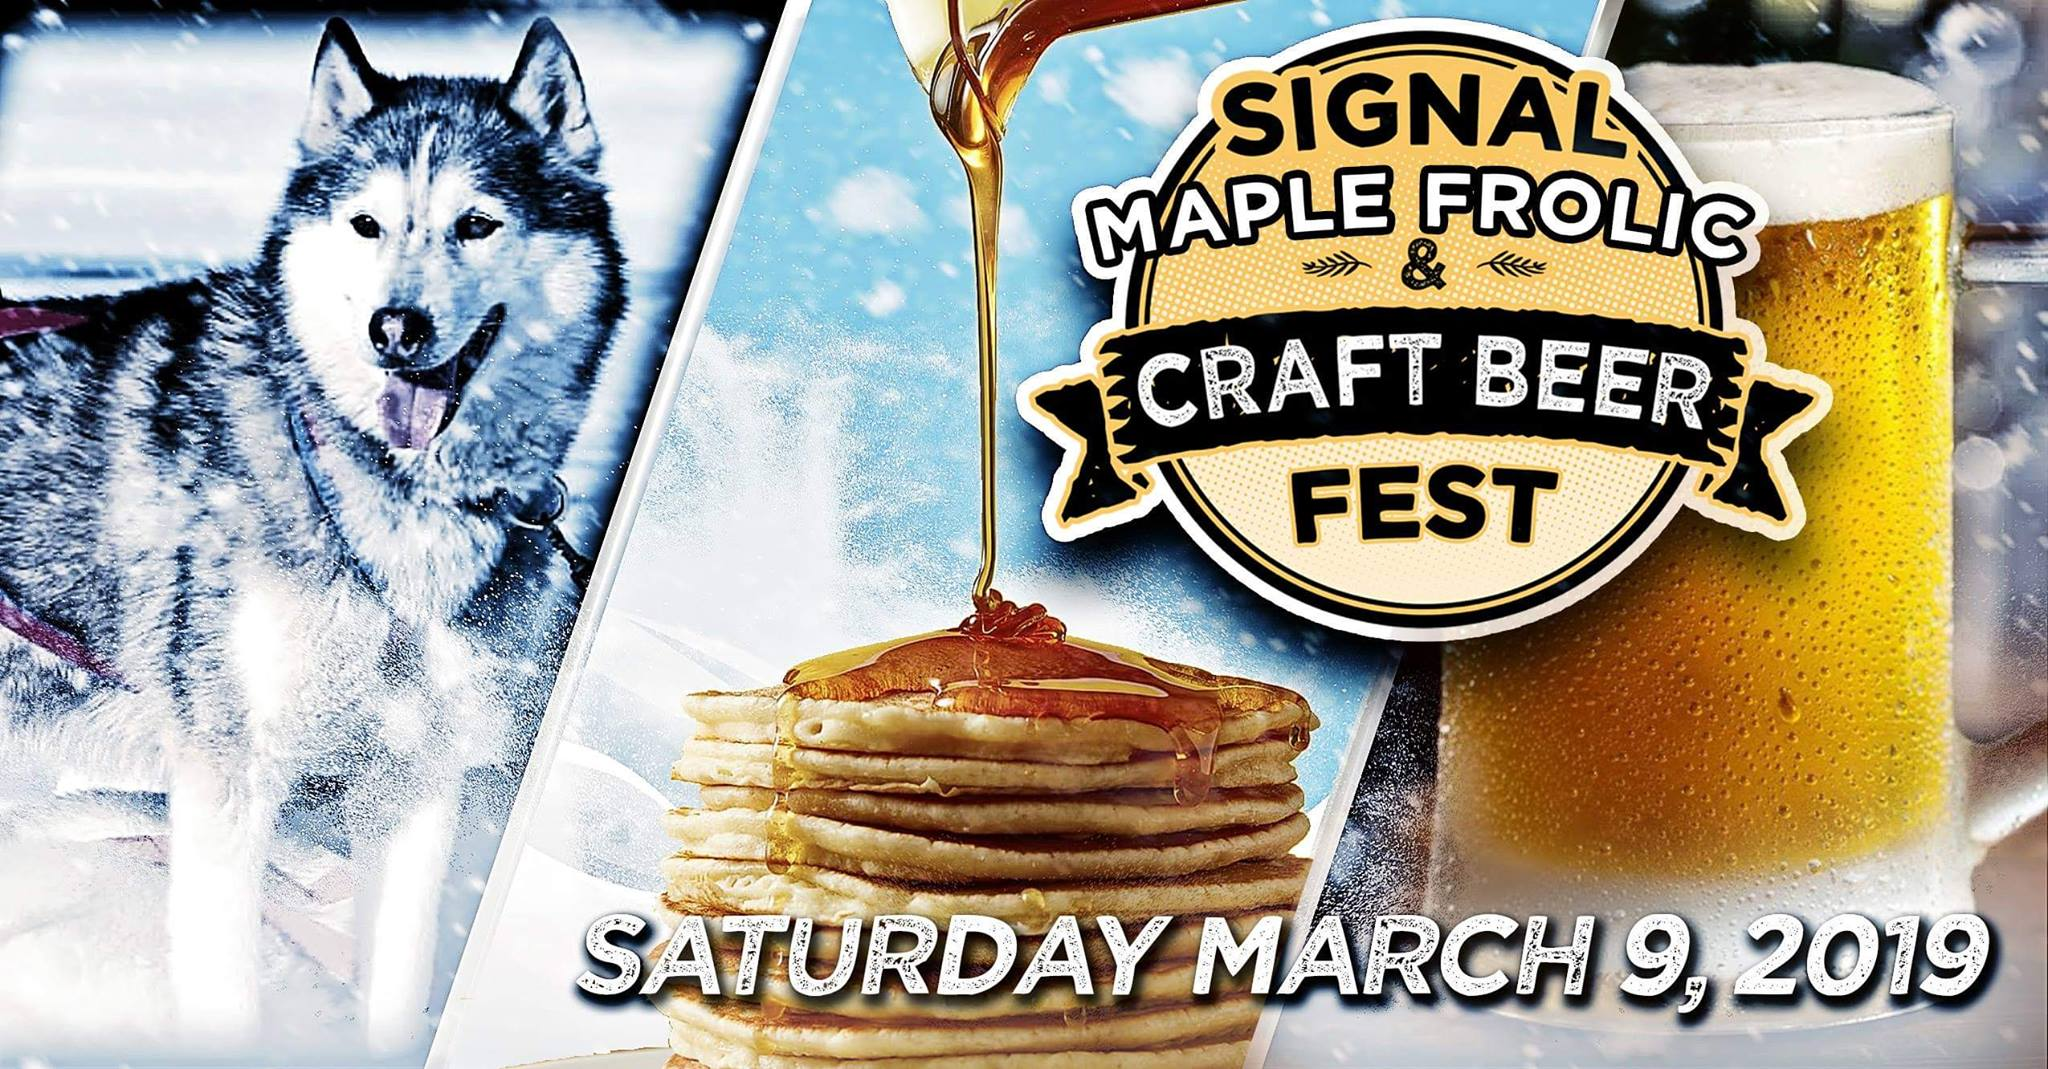 signal maple frolic craft beer fest